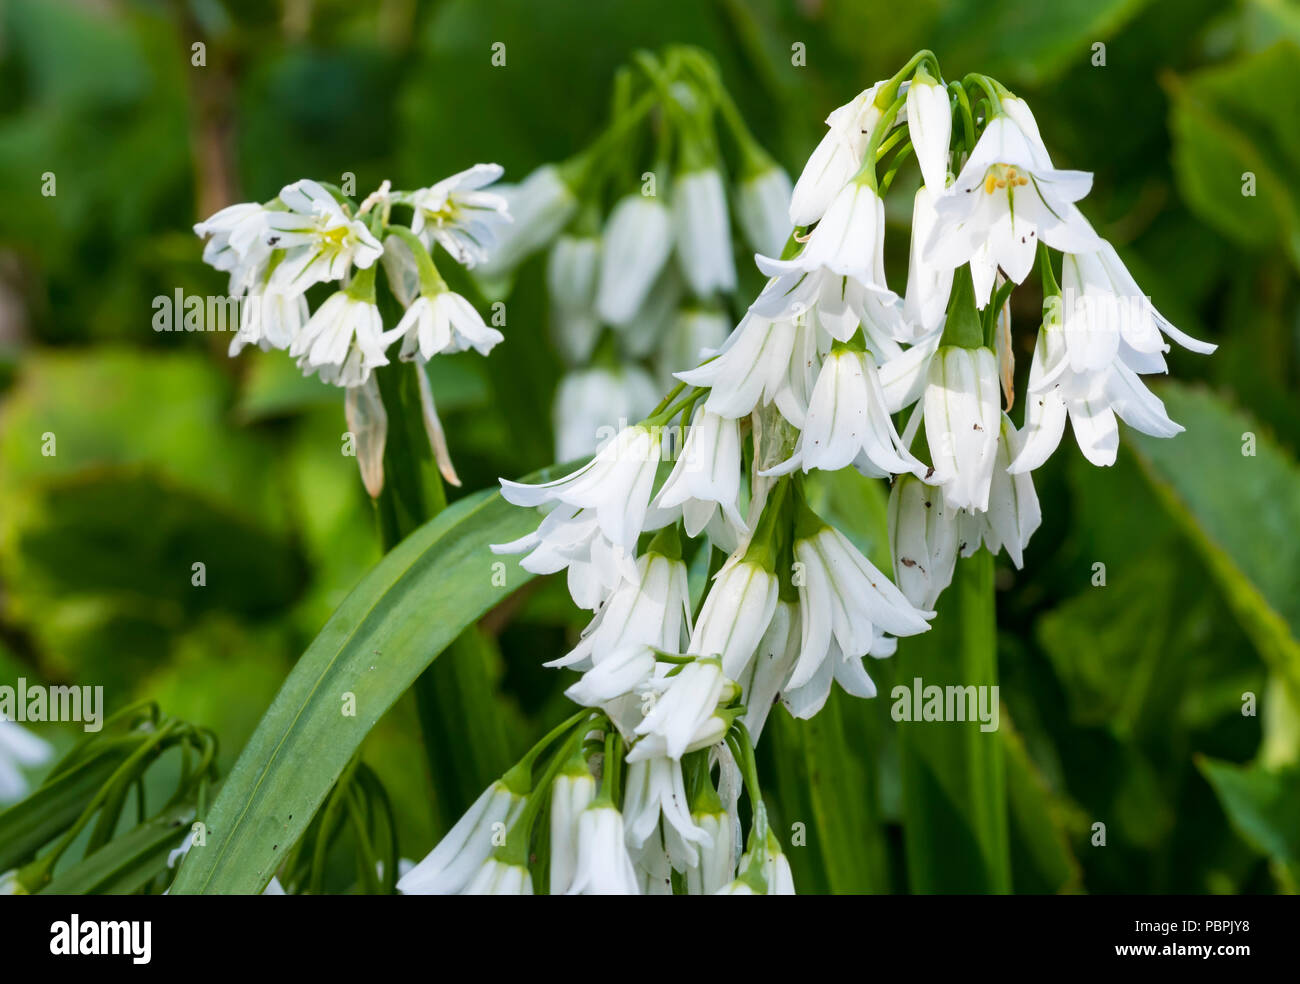 Allium triquetrum (Three-cornered Garlic) plant with small white flowers in late Spring in West Sussex, England, UK. - Stock Image